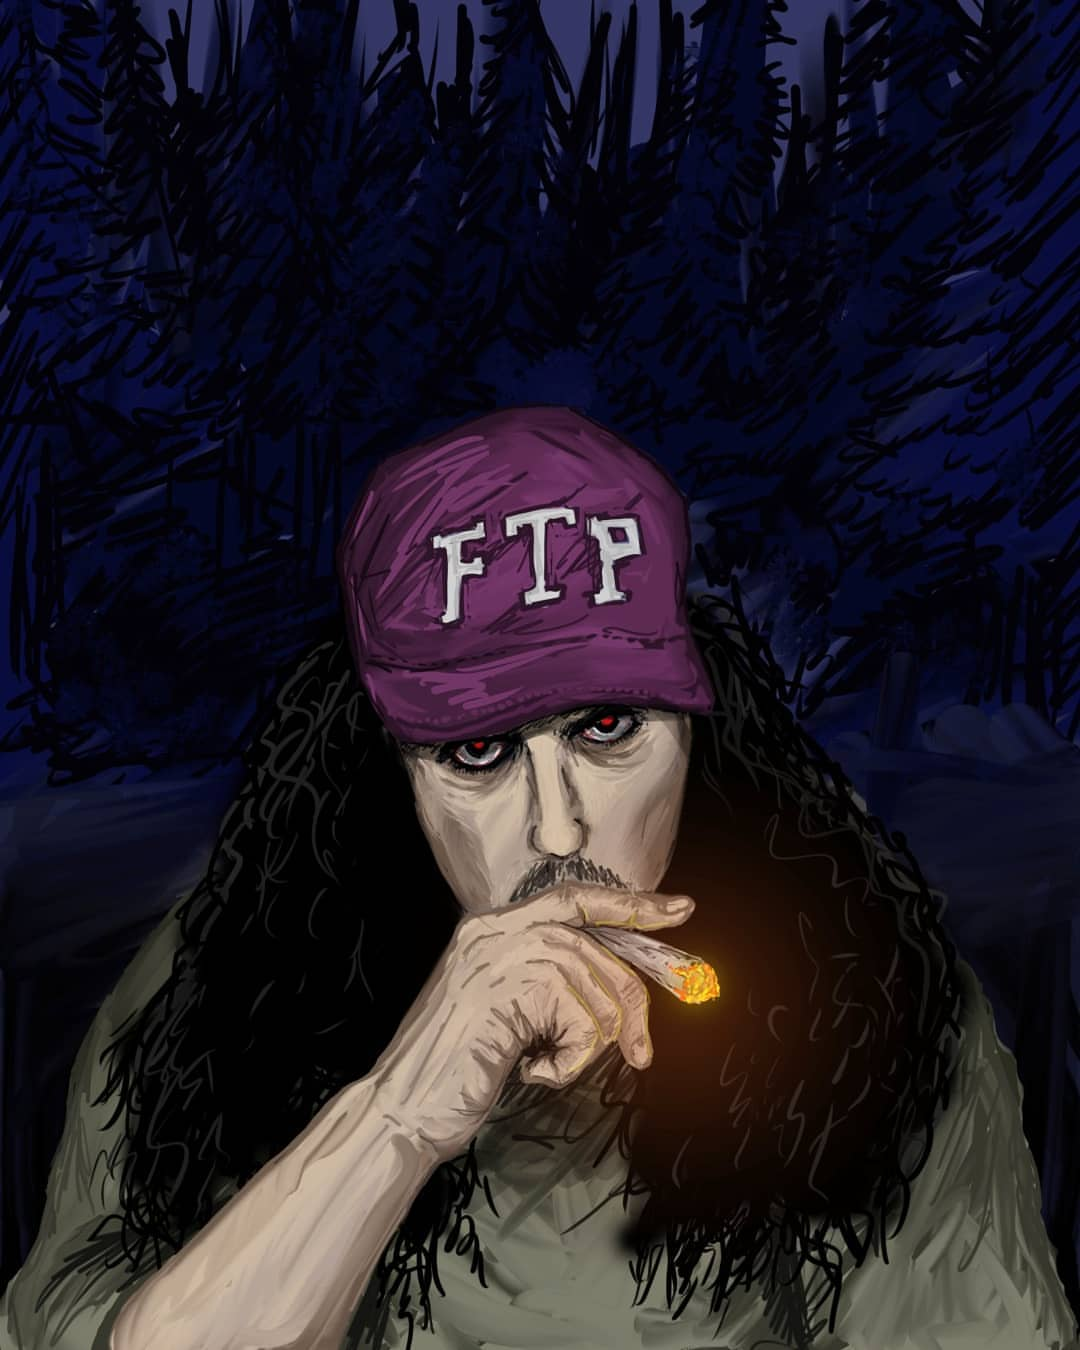 Ruby $uicideboy$ Wallpapers - Wallpaper Cave